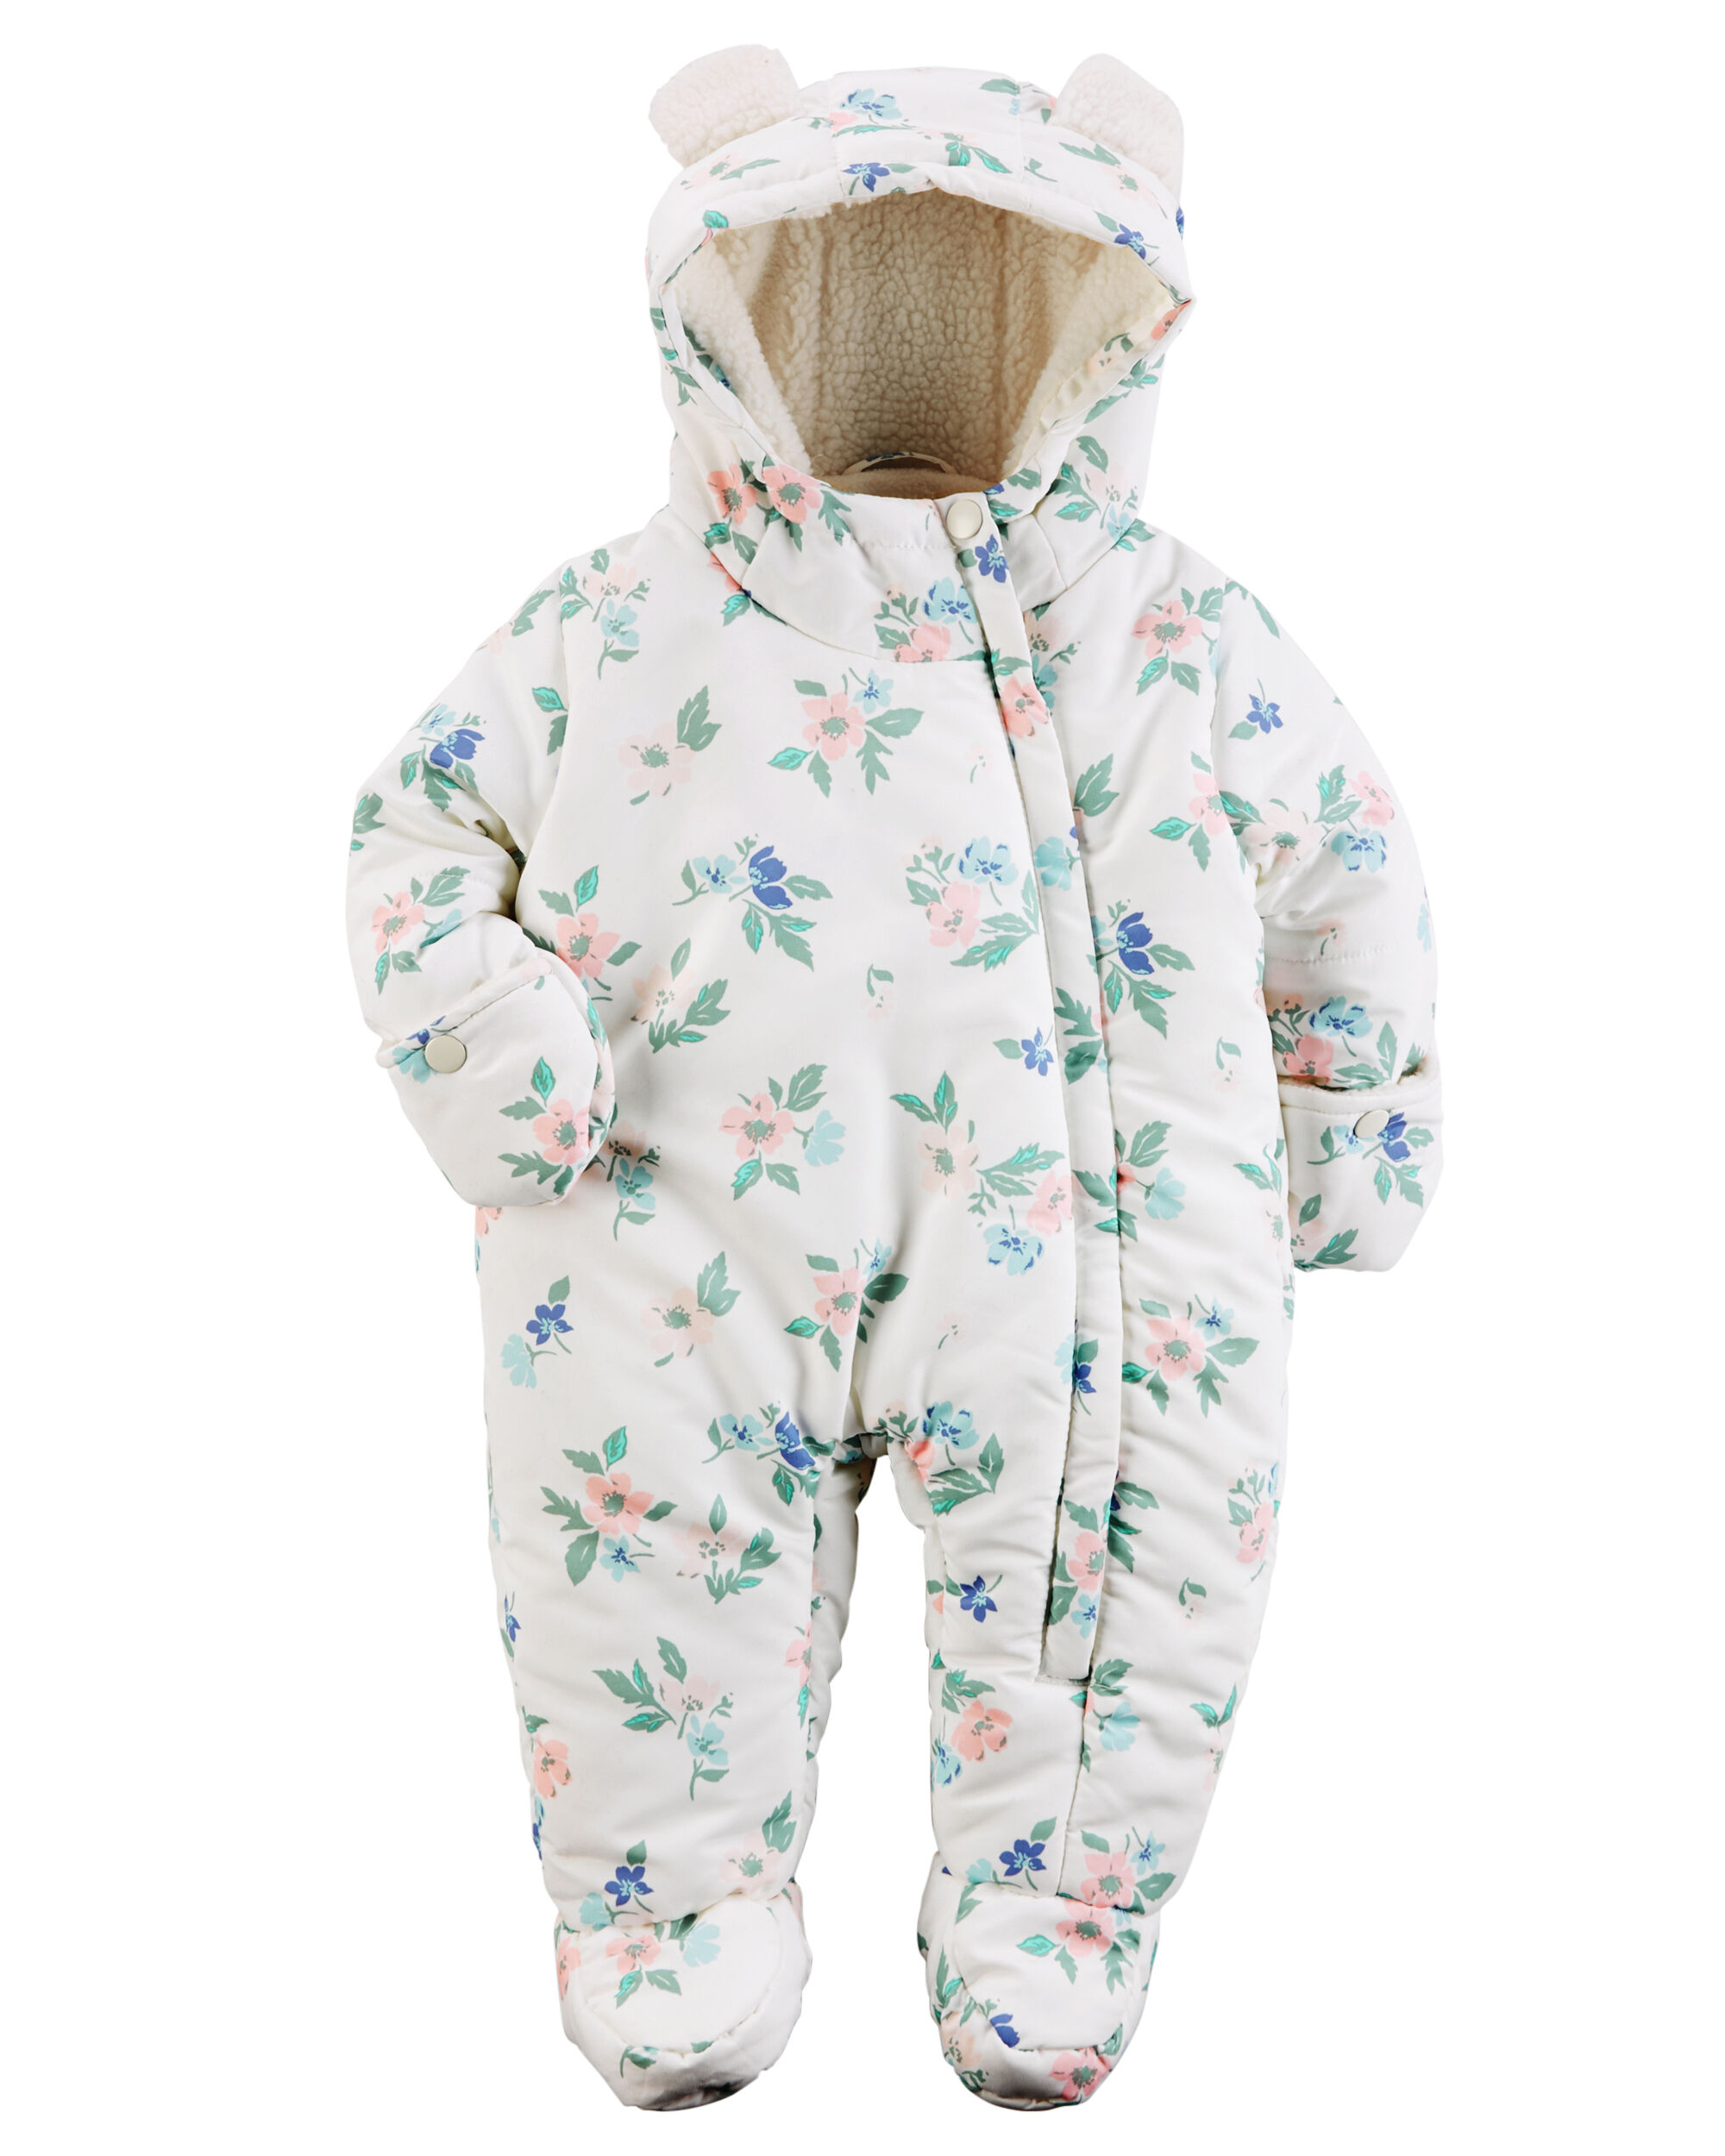 We built our baby and toddler outdoor clothing to stand up to childhood—guaranteed. Free Shipping over $75 at free-cabinetfile-downloaded.ga Our warmest one-piece bunting is insulated with fill-power % Recycled Down (duck and goose down reclaimed from down products). It's lined with soft polyester fabric and has a generous length to help keep.